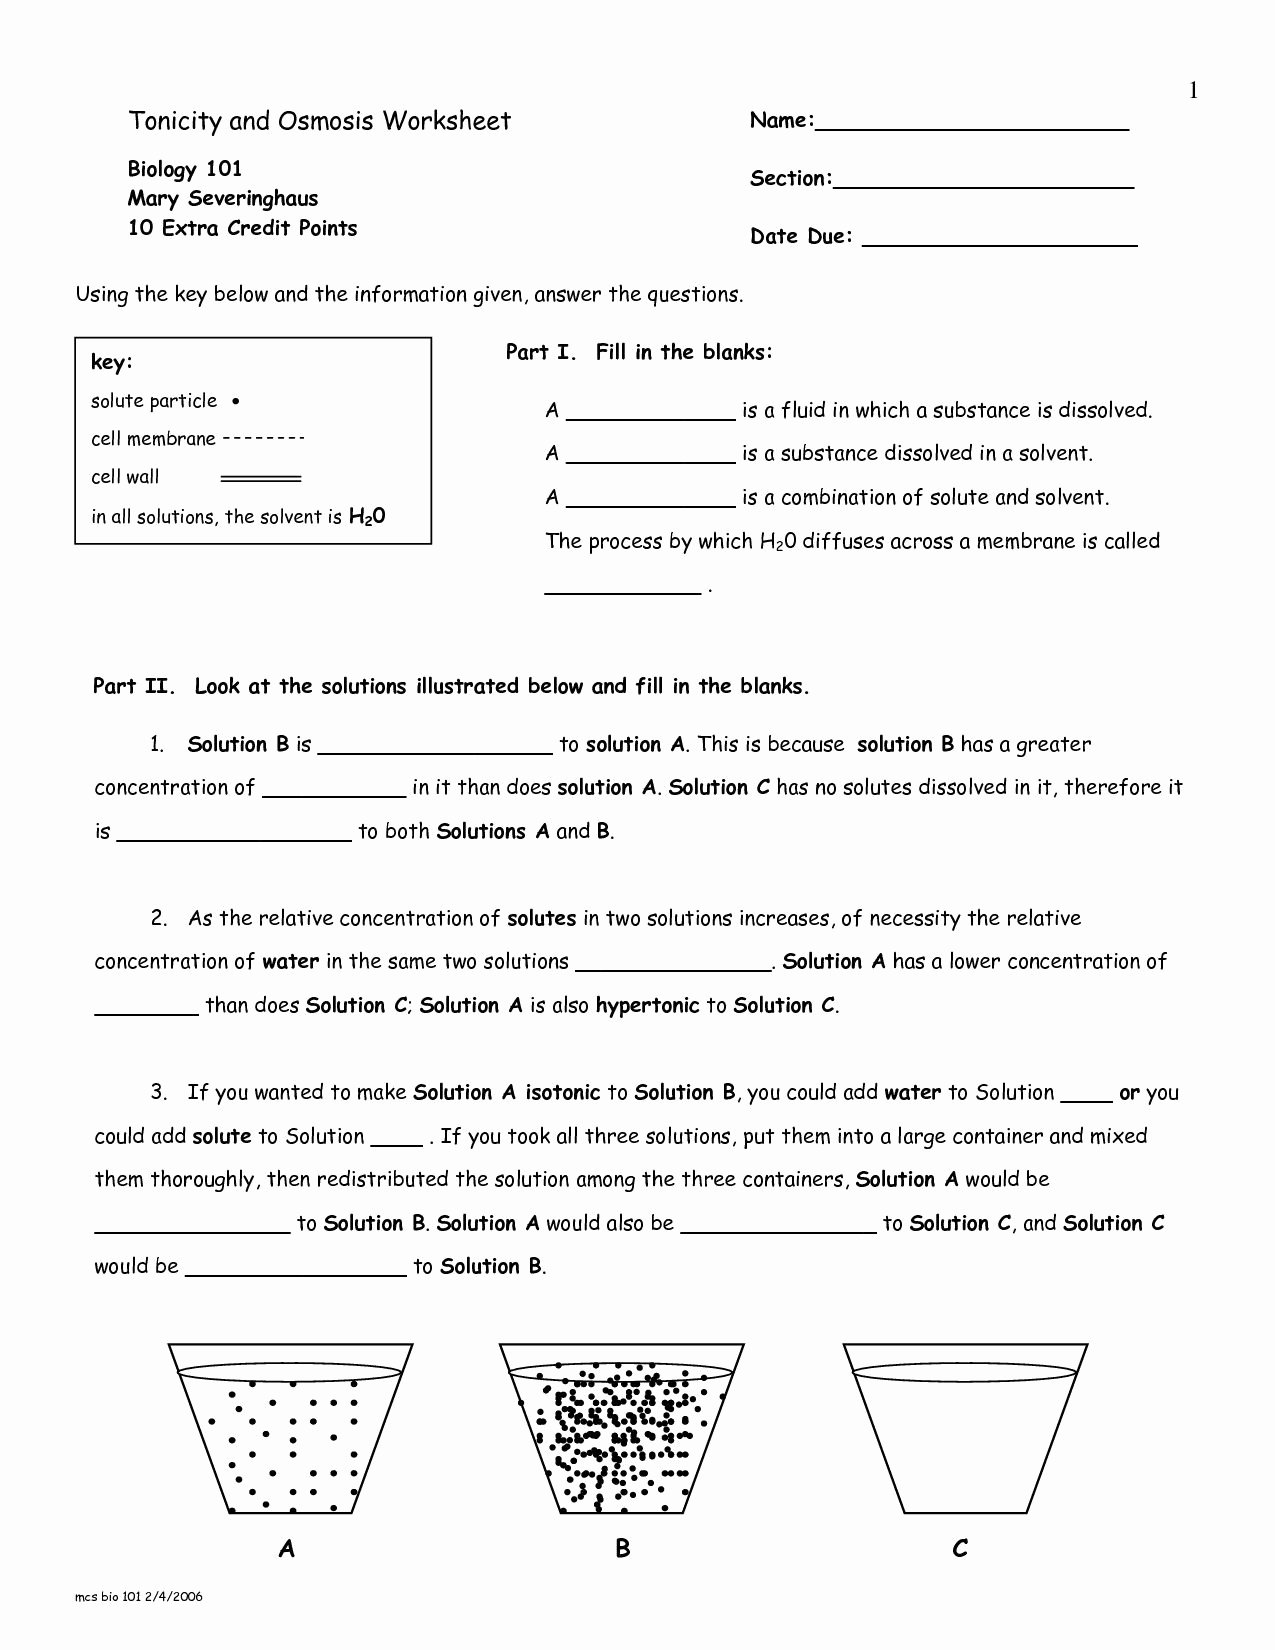 Cellular Transport Worksheet Answers Lovely Cellular Transport Worksheet Section A Cell Membrane